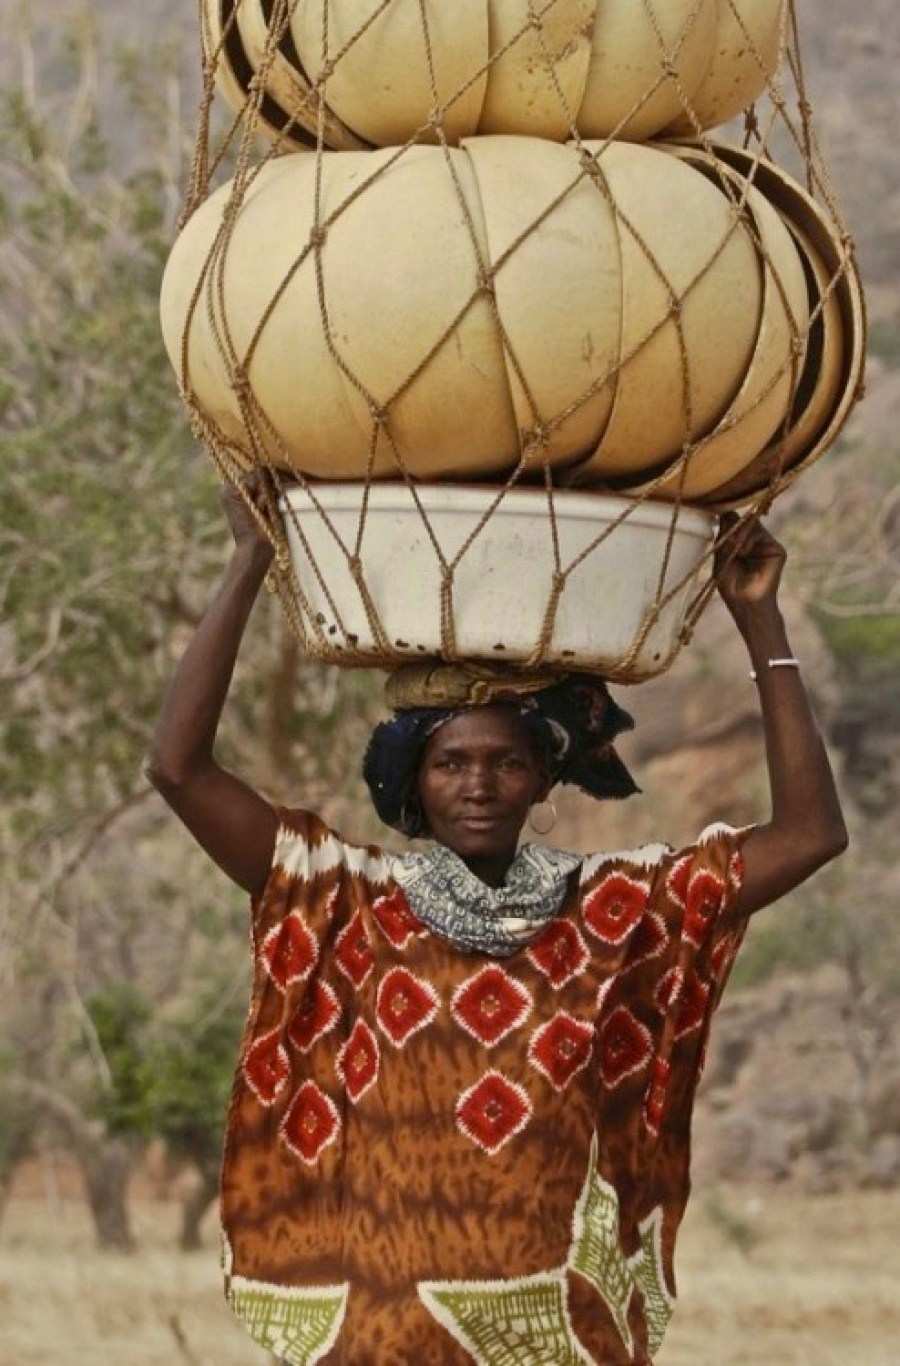 African woman carrying huge stack of bowls on her head